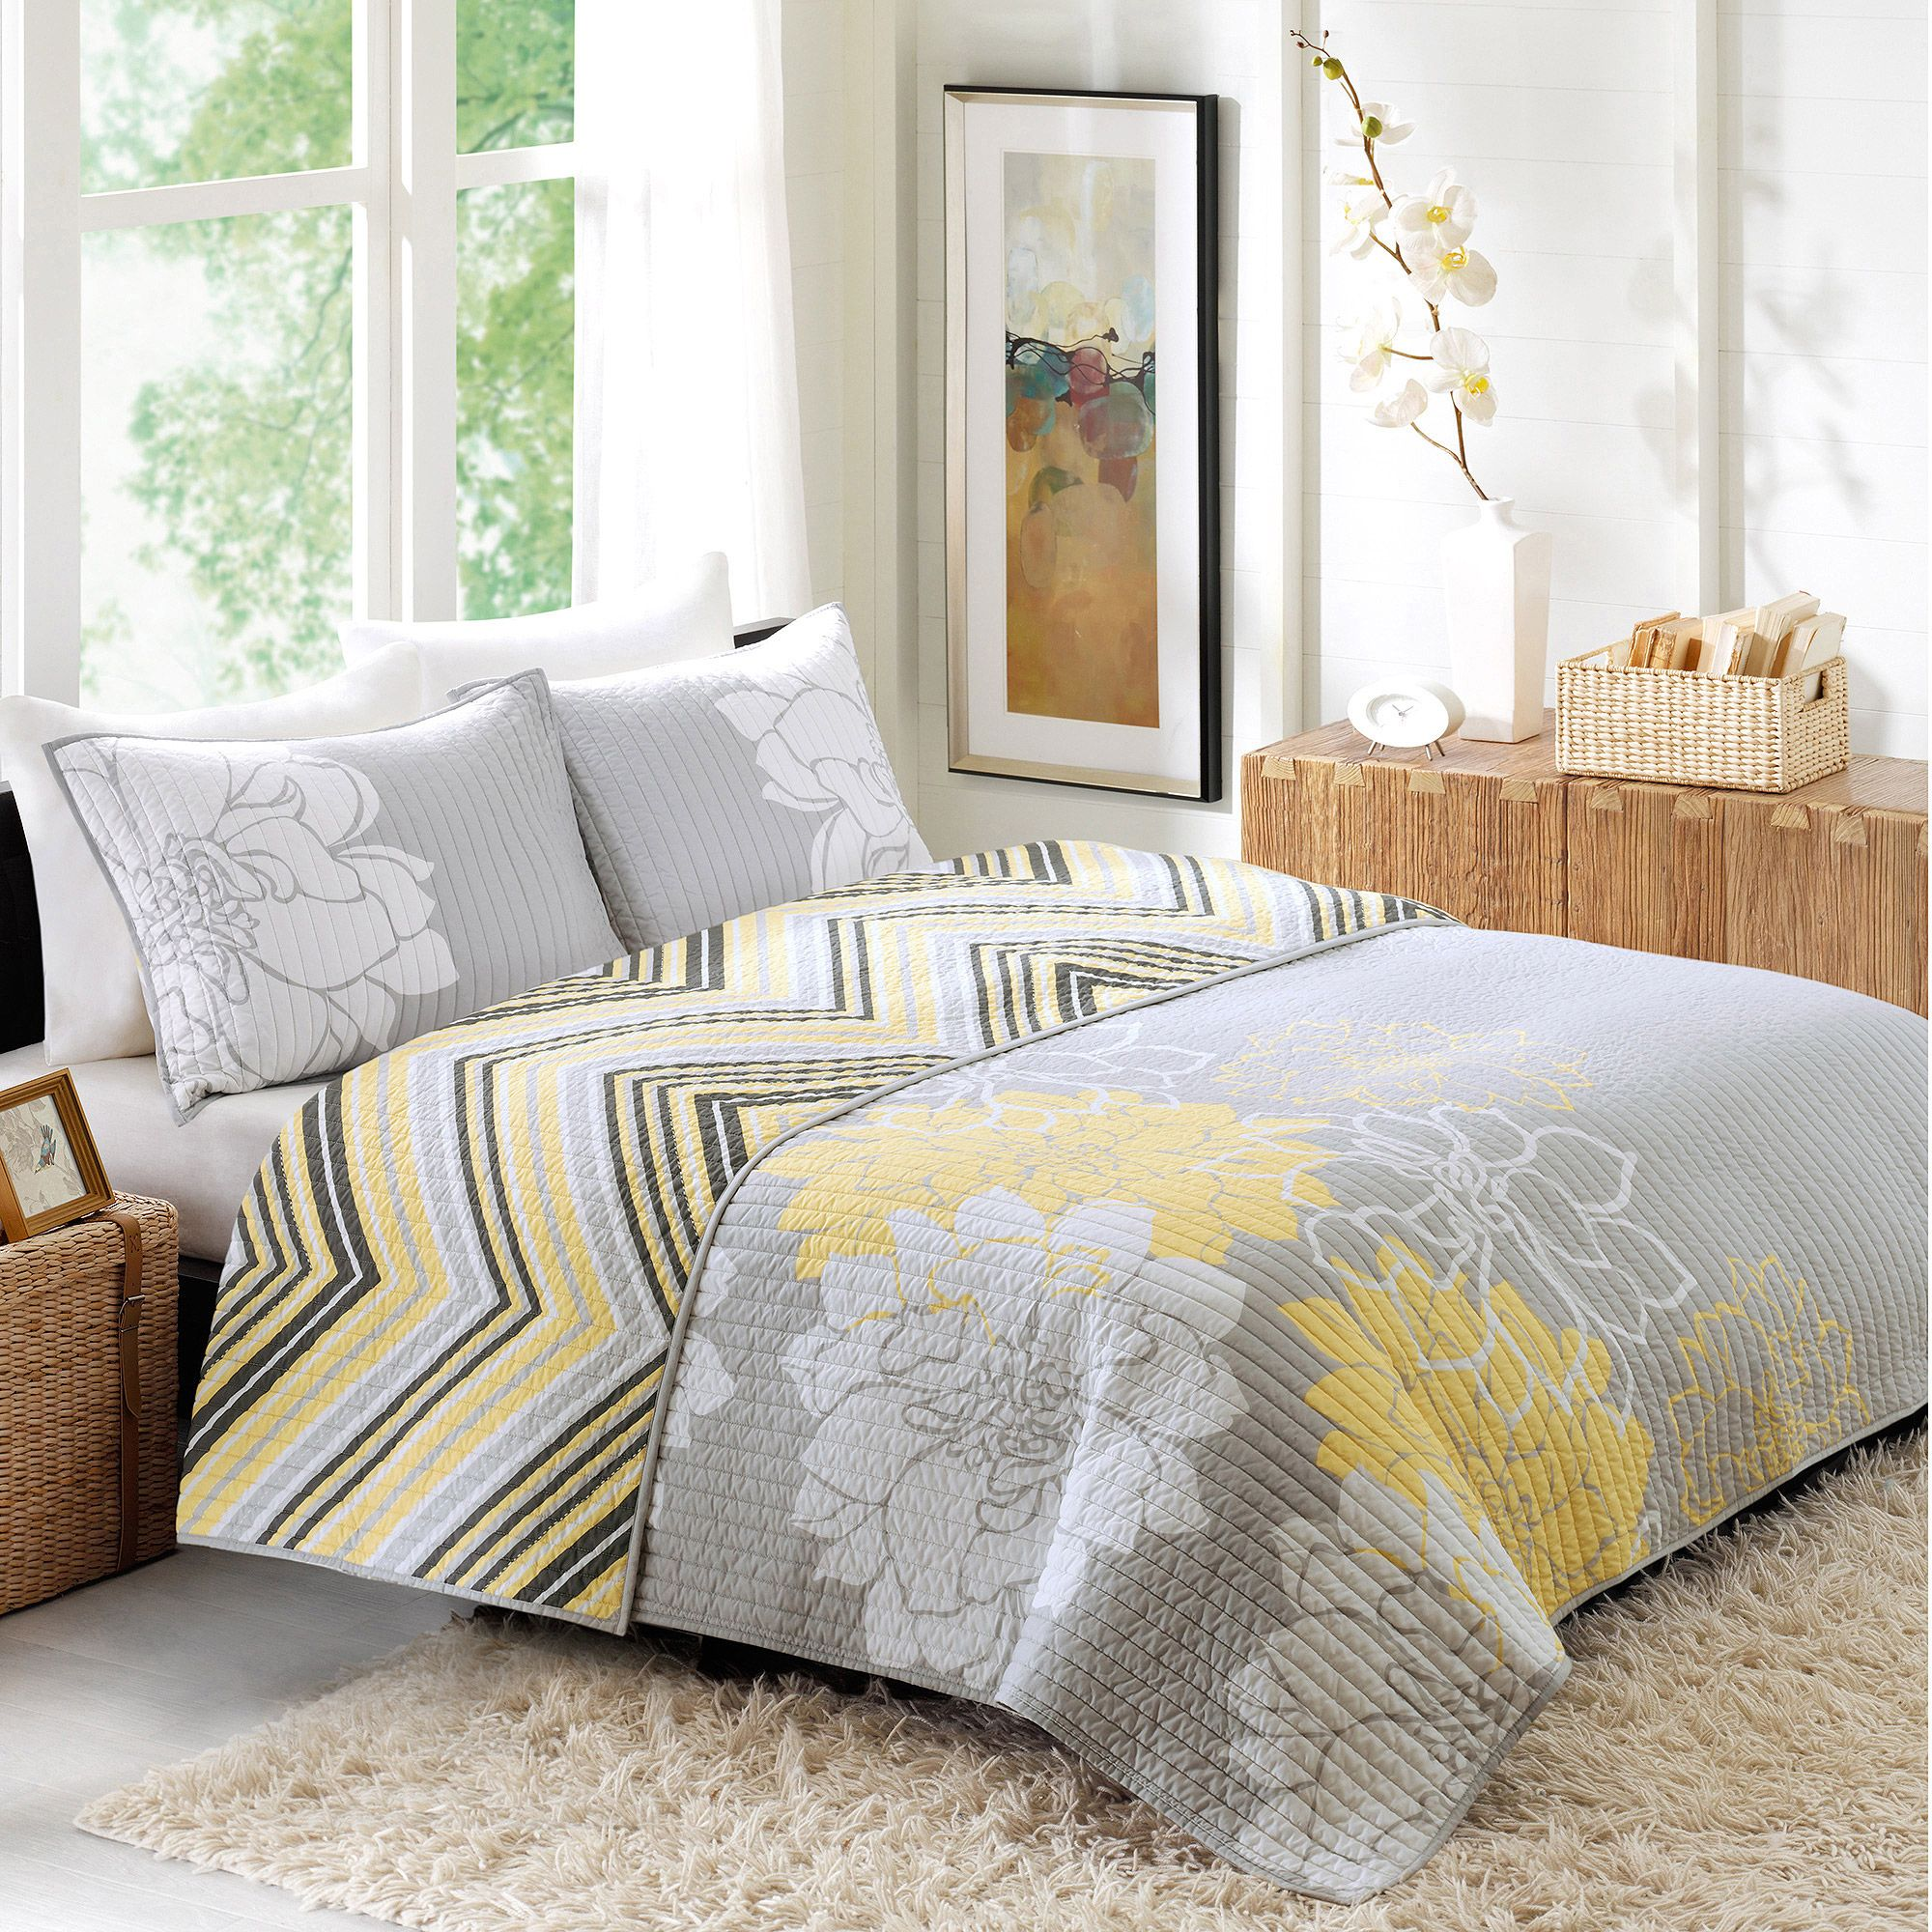 Better Homes and Gardens Quilt Collection, Yellow Floral - Walmart.com